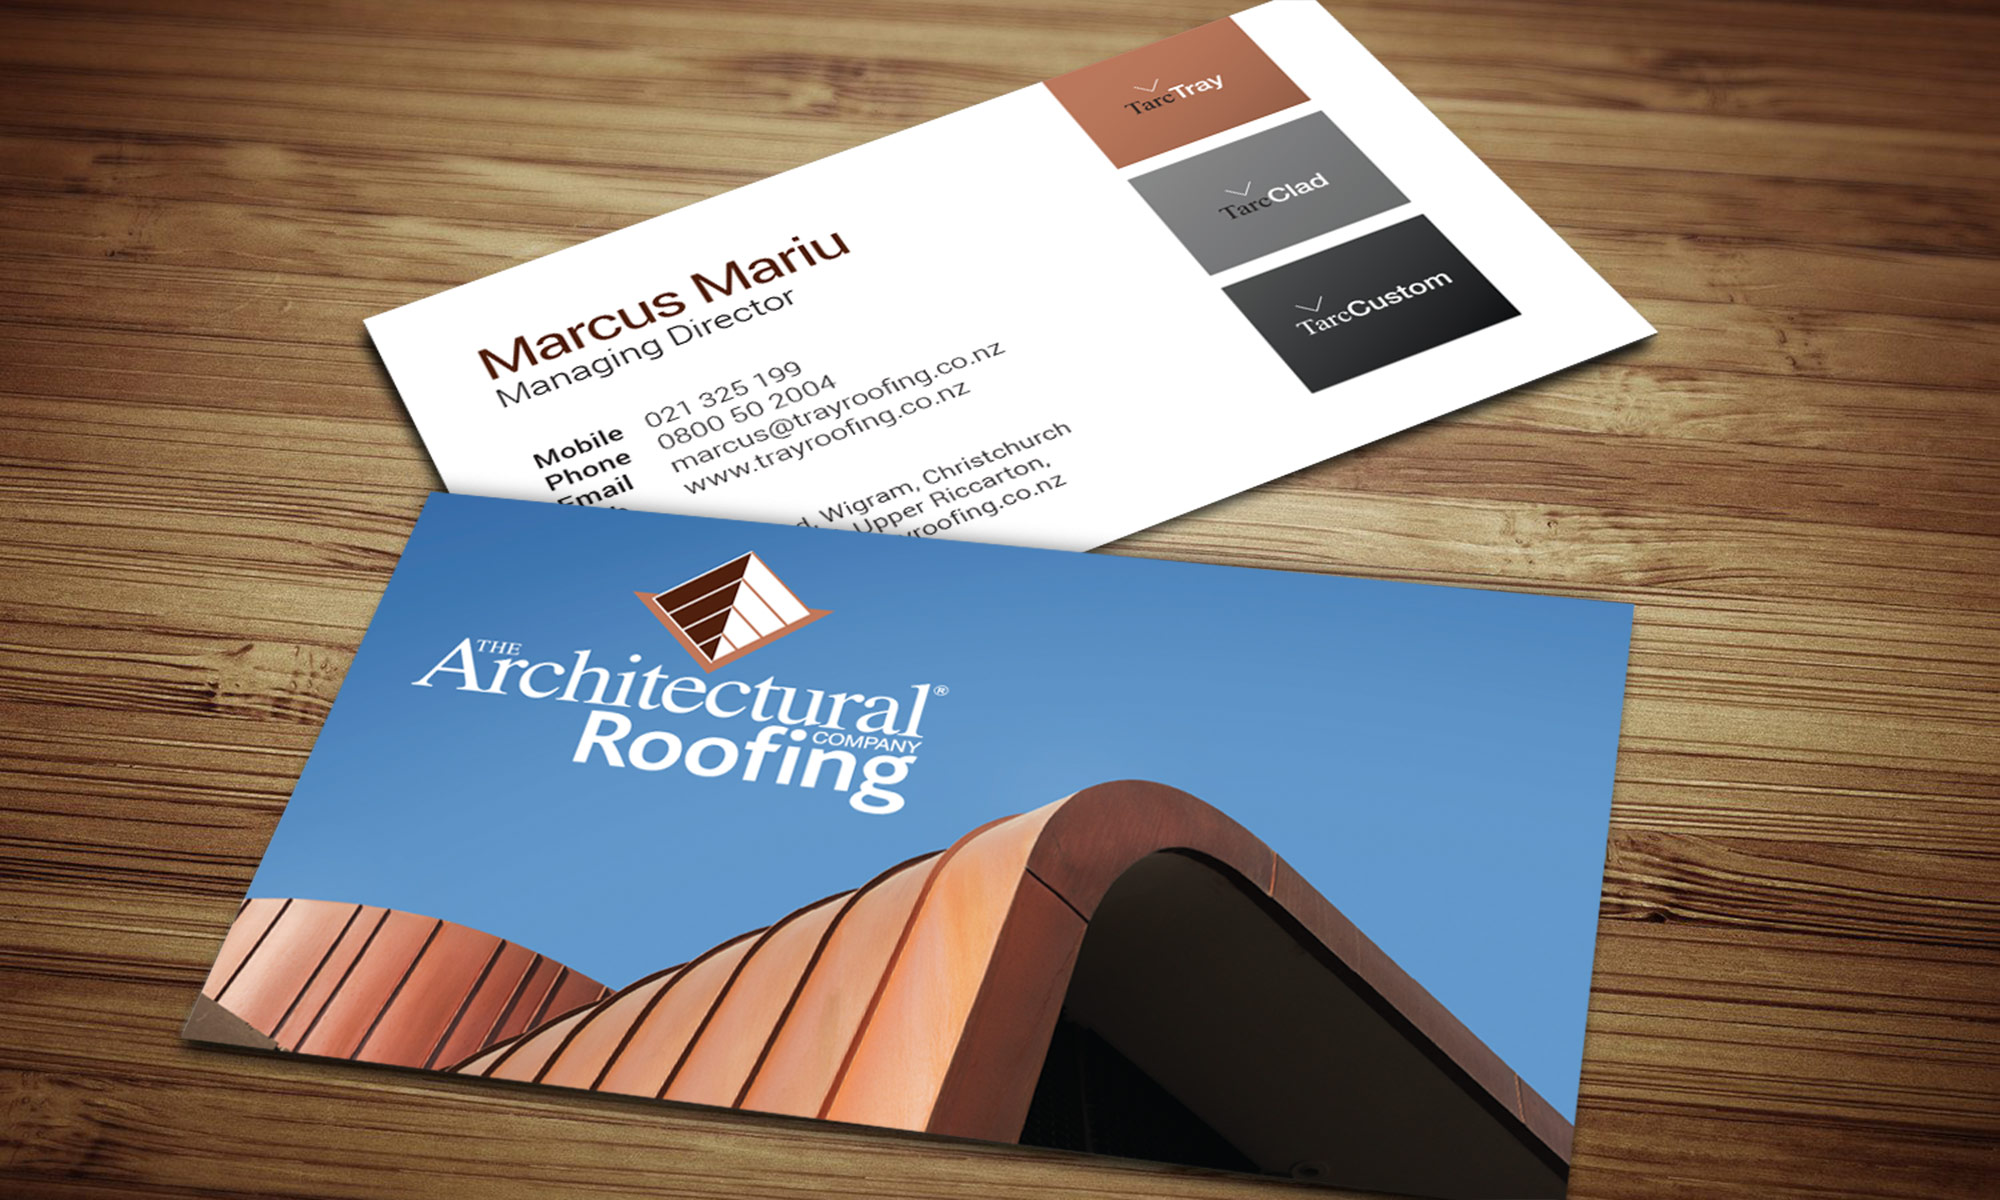 Architectural roofing business cards